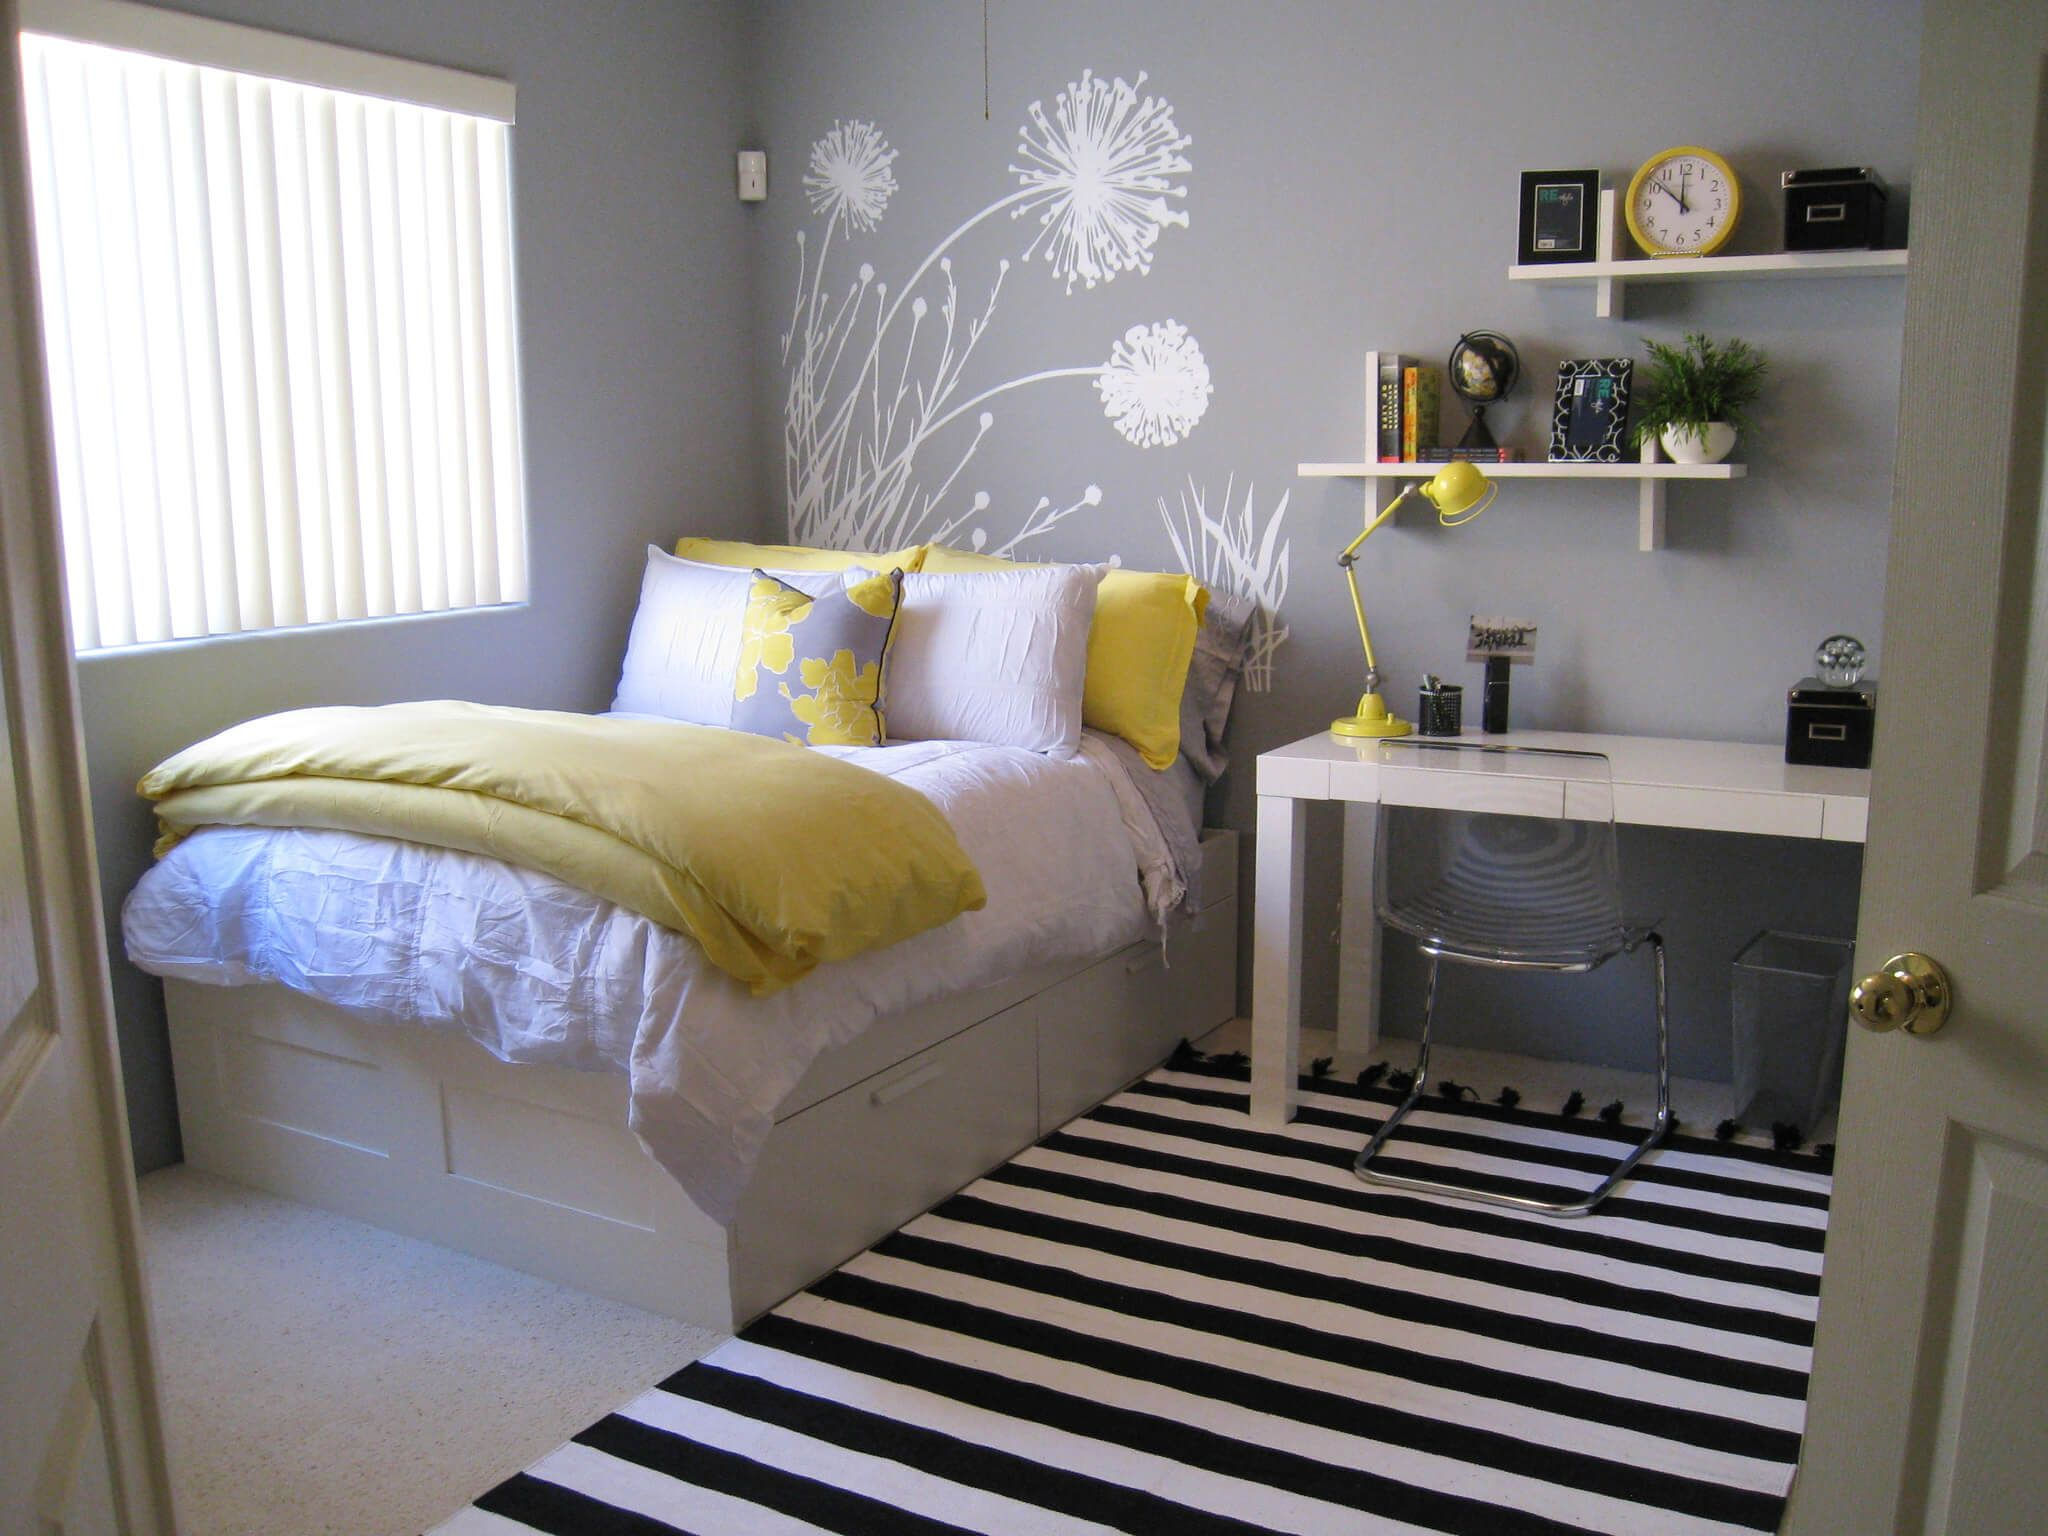 Best 25 Decorating small bedrooms ideas on Pinterest Organizing